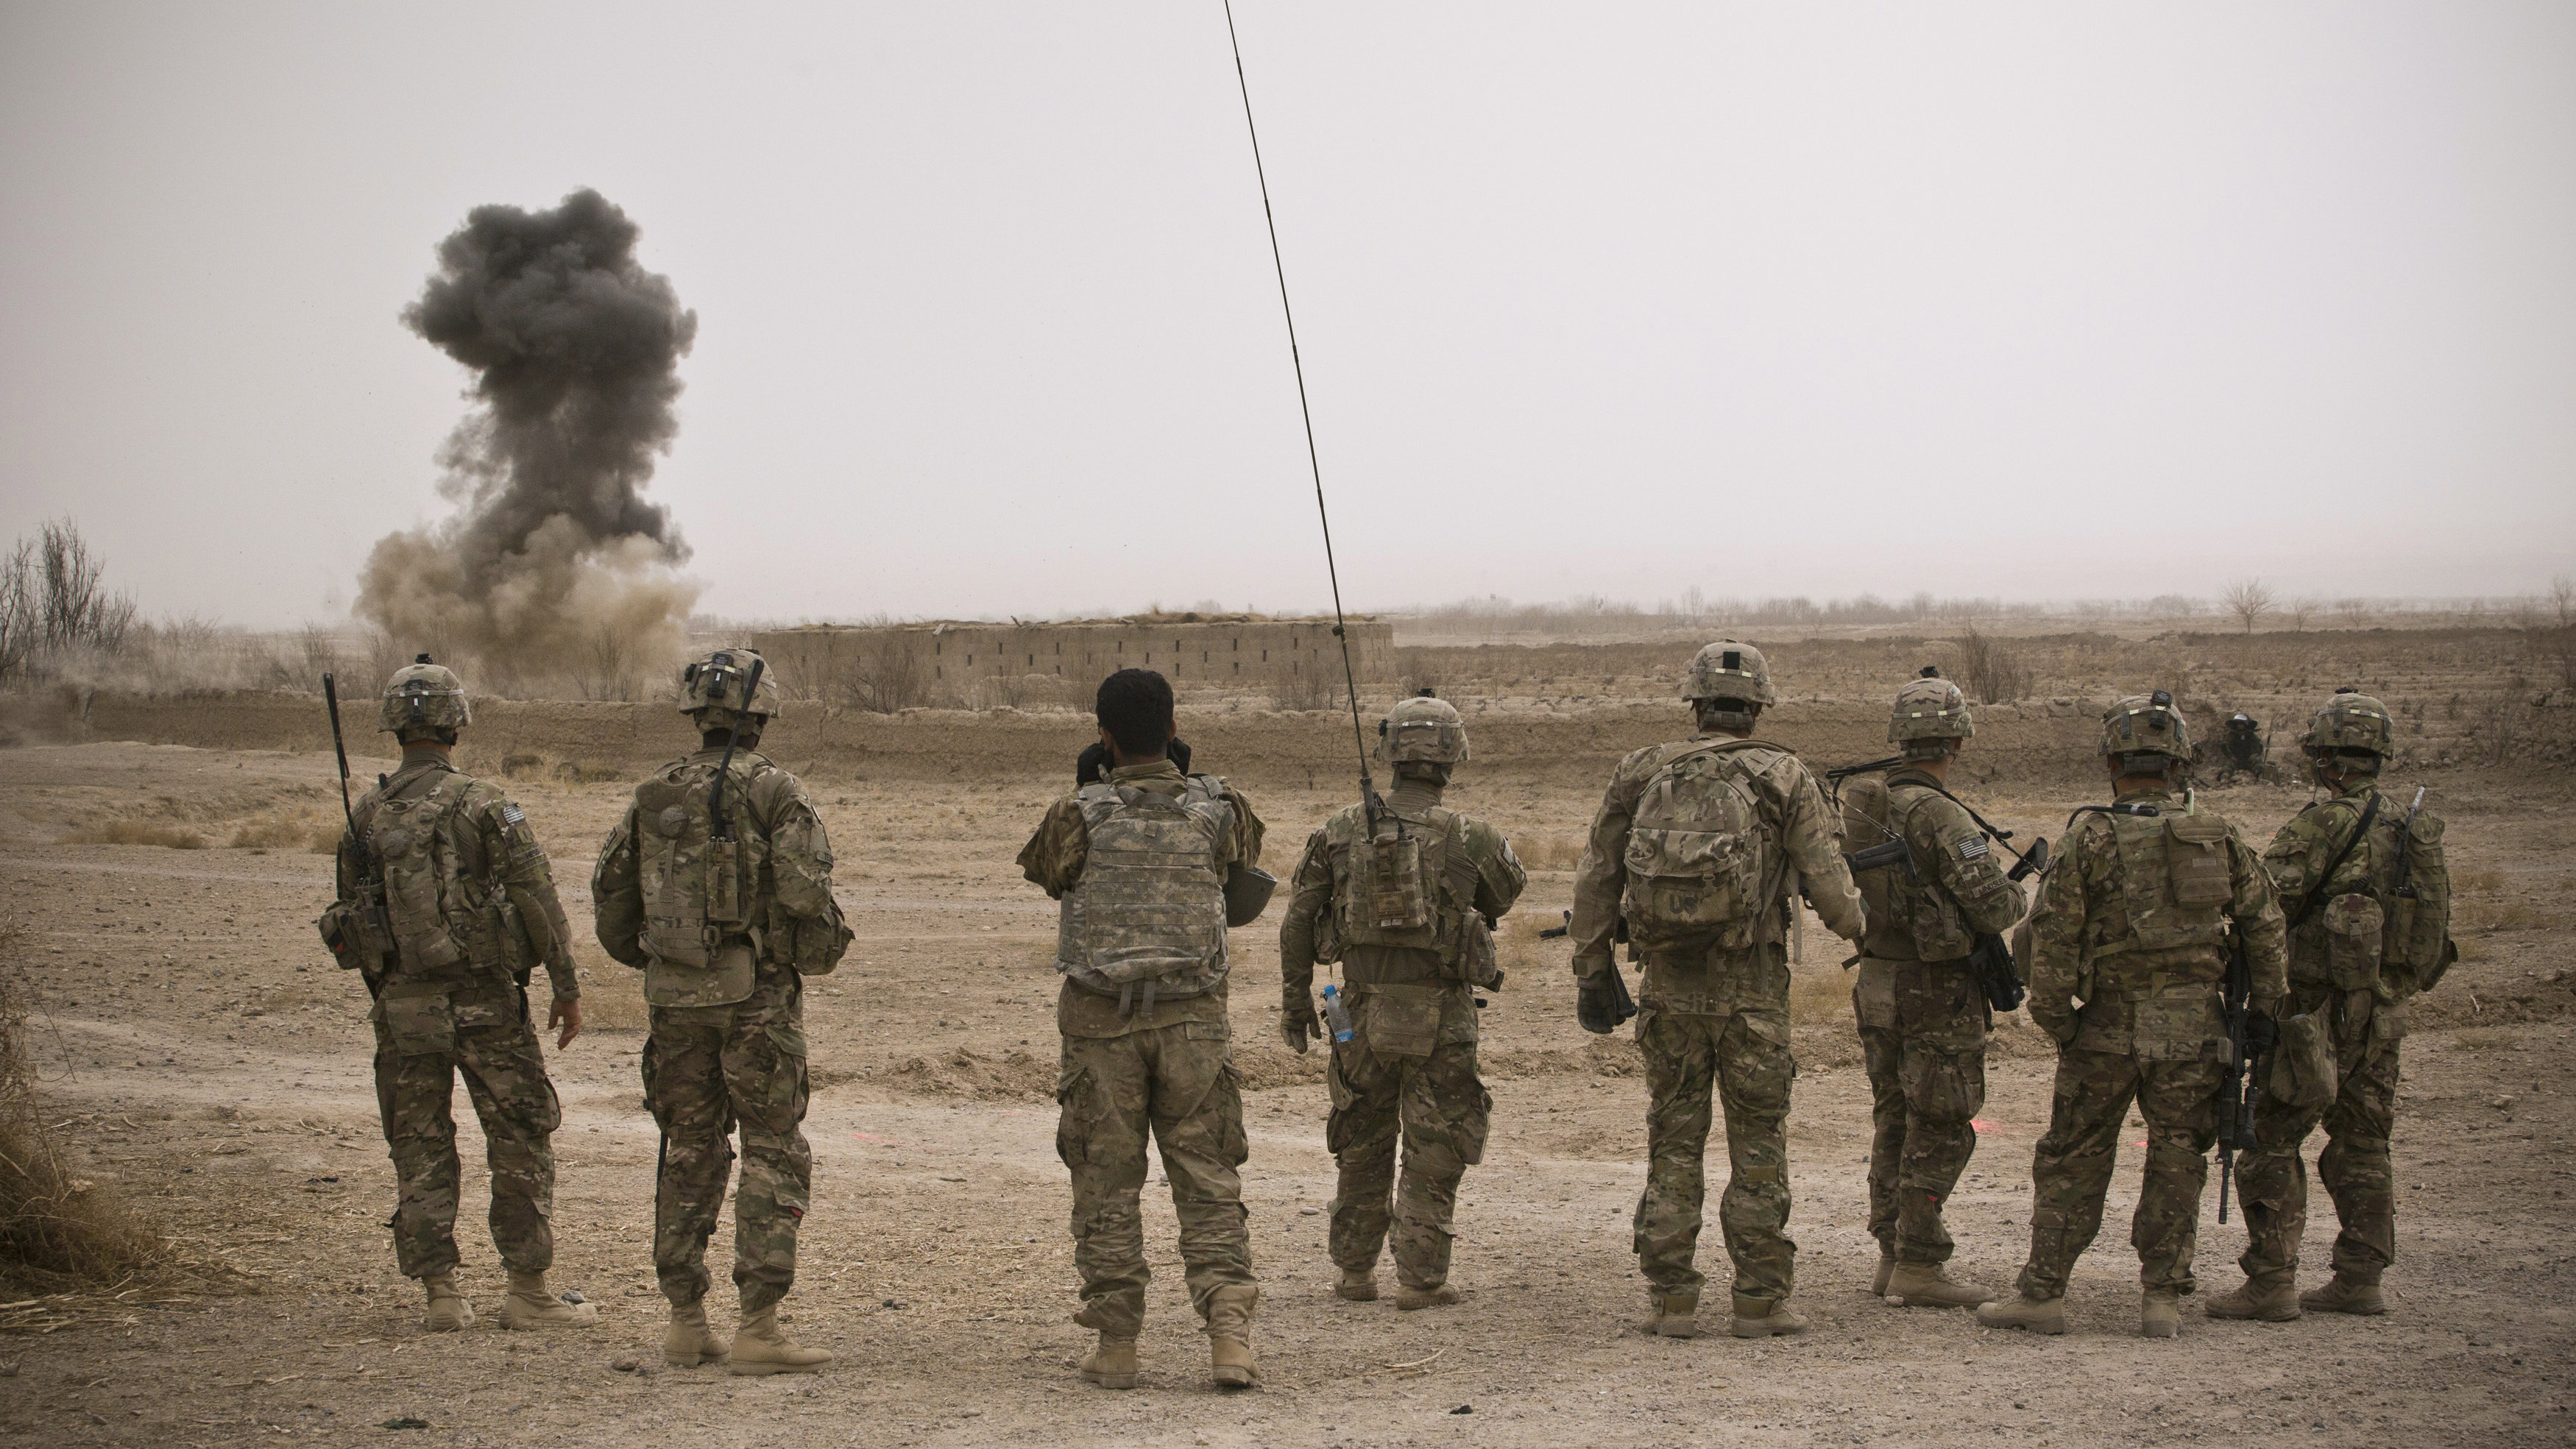 U.S. Army soldiers watch a controlled detonation during a mission near Command Outpost AJK (short for Azim-Jan-Kariz, a near-by village) in Maiwand District, Kandahar Province January 30, 2013.